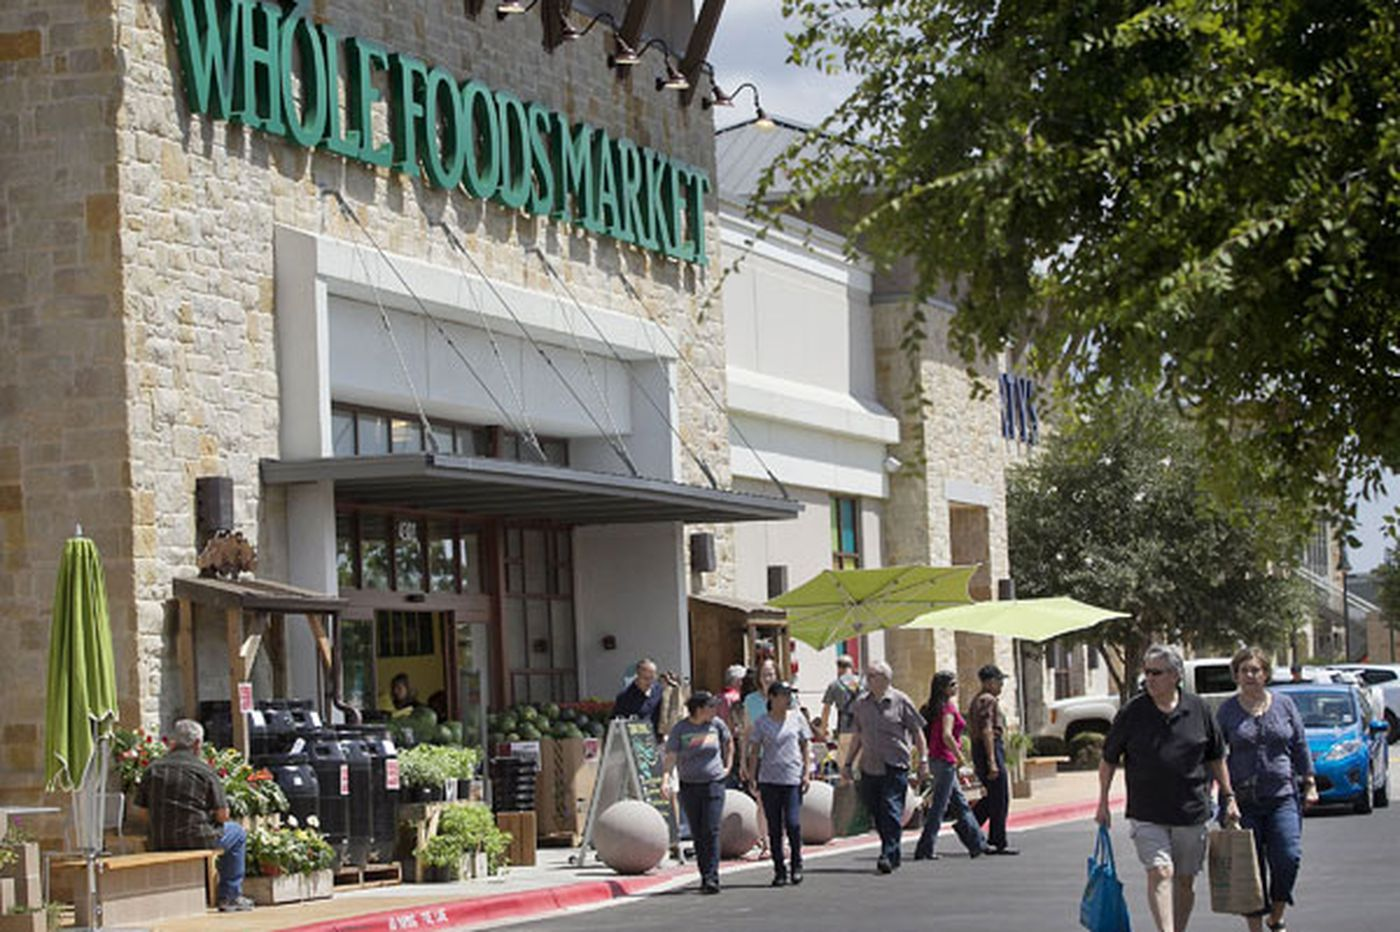 Amid tougher competition, can Whole Foods maintain its pace?